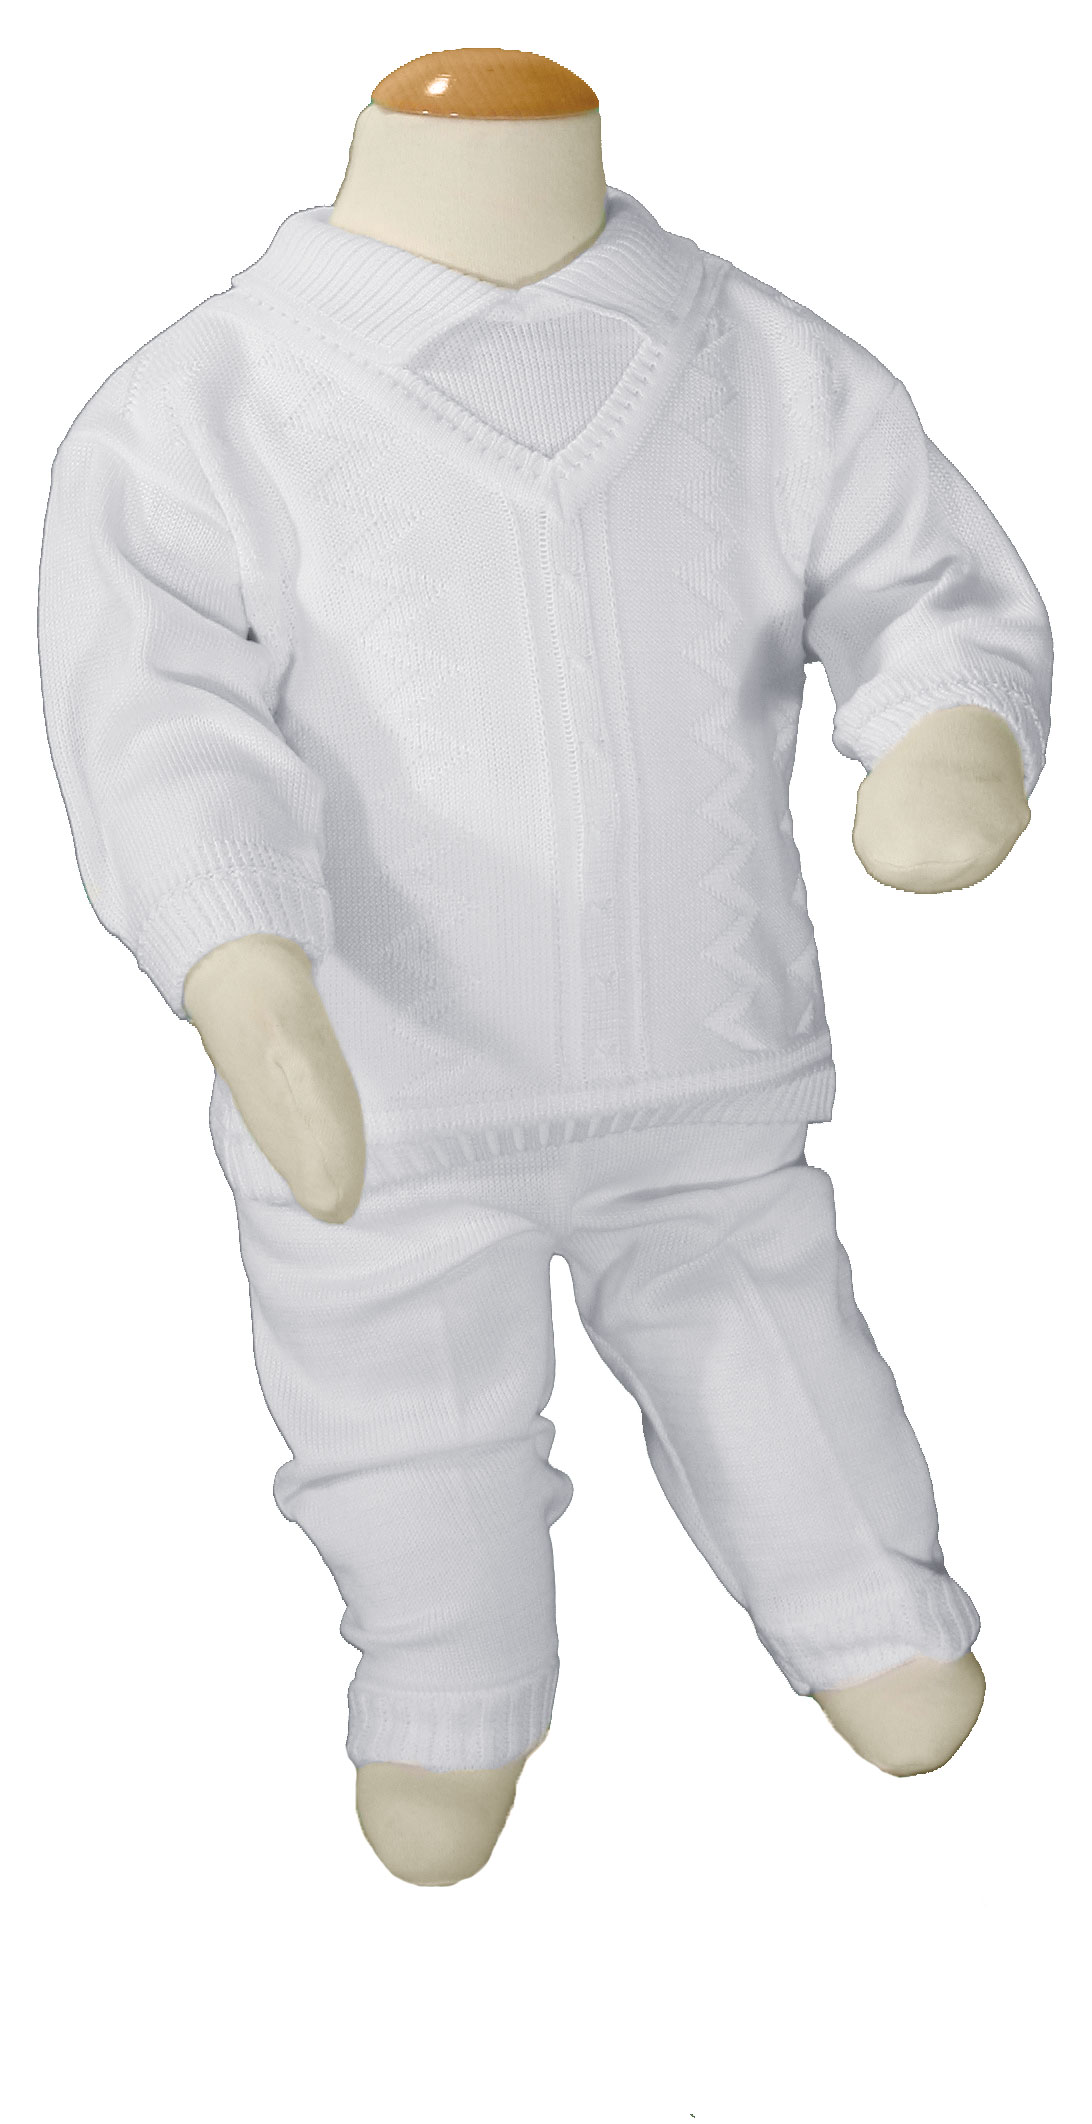 09b739223 Boys 100% Cotton Knit Two Piece White Christening Baptism Outfit ...